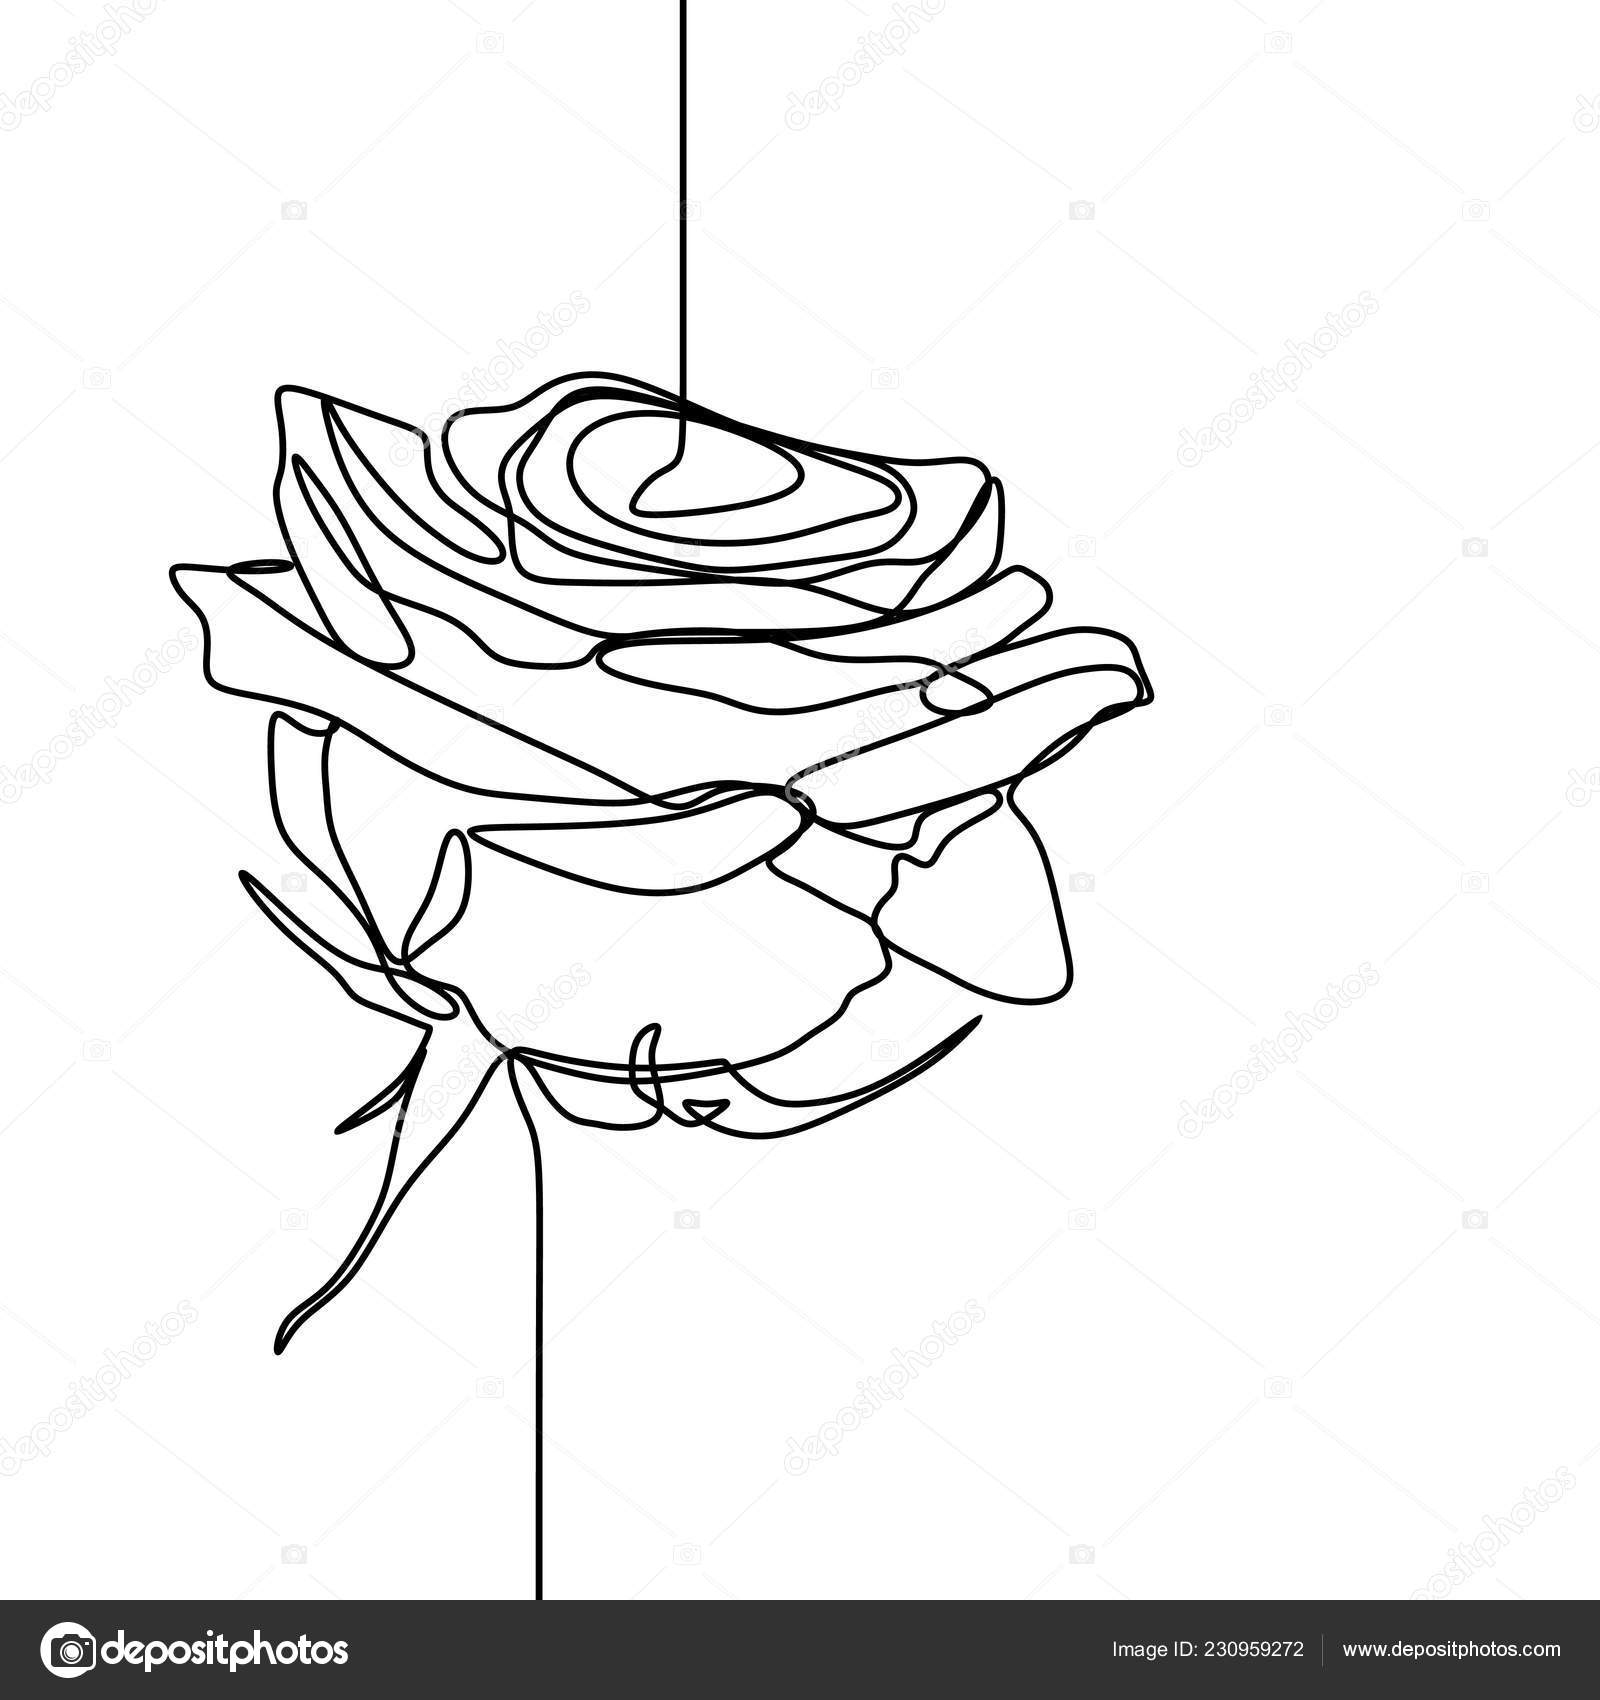 One Line Drawing Rose Flower Minimalist Design Isolated White